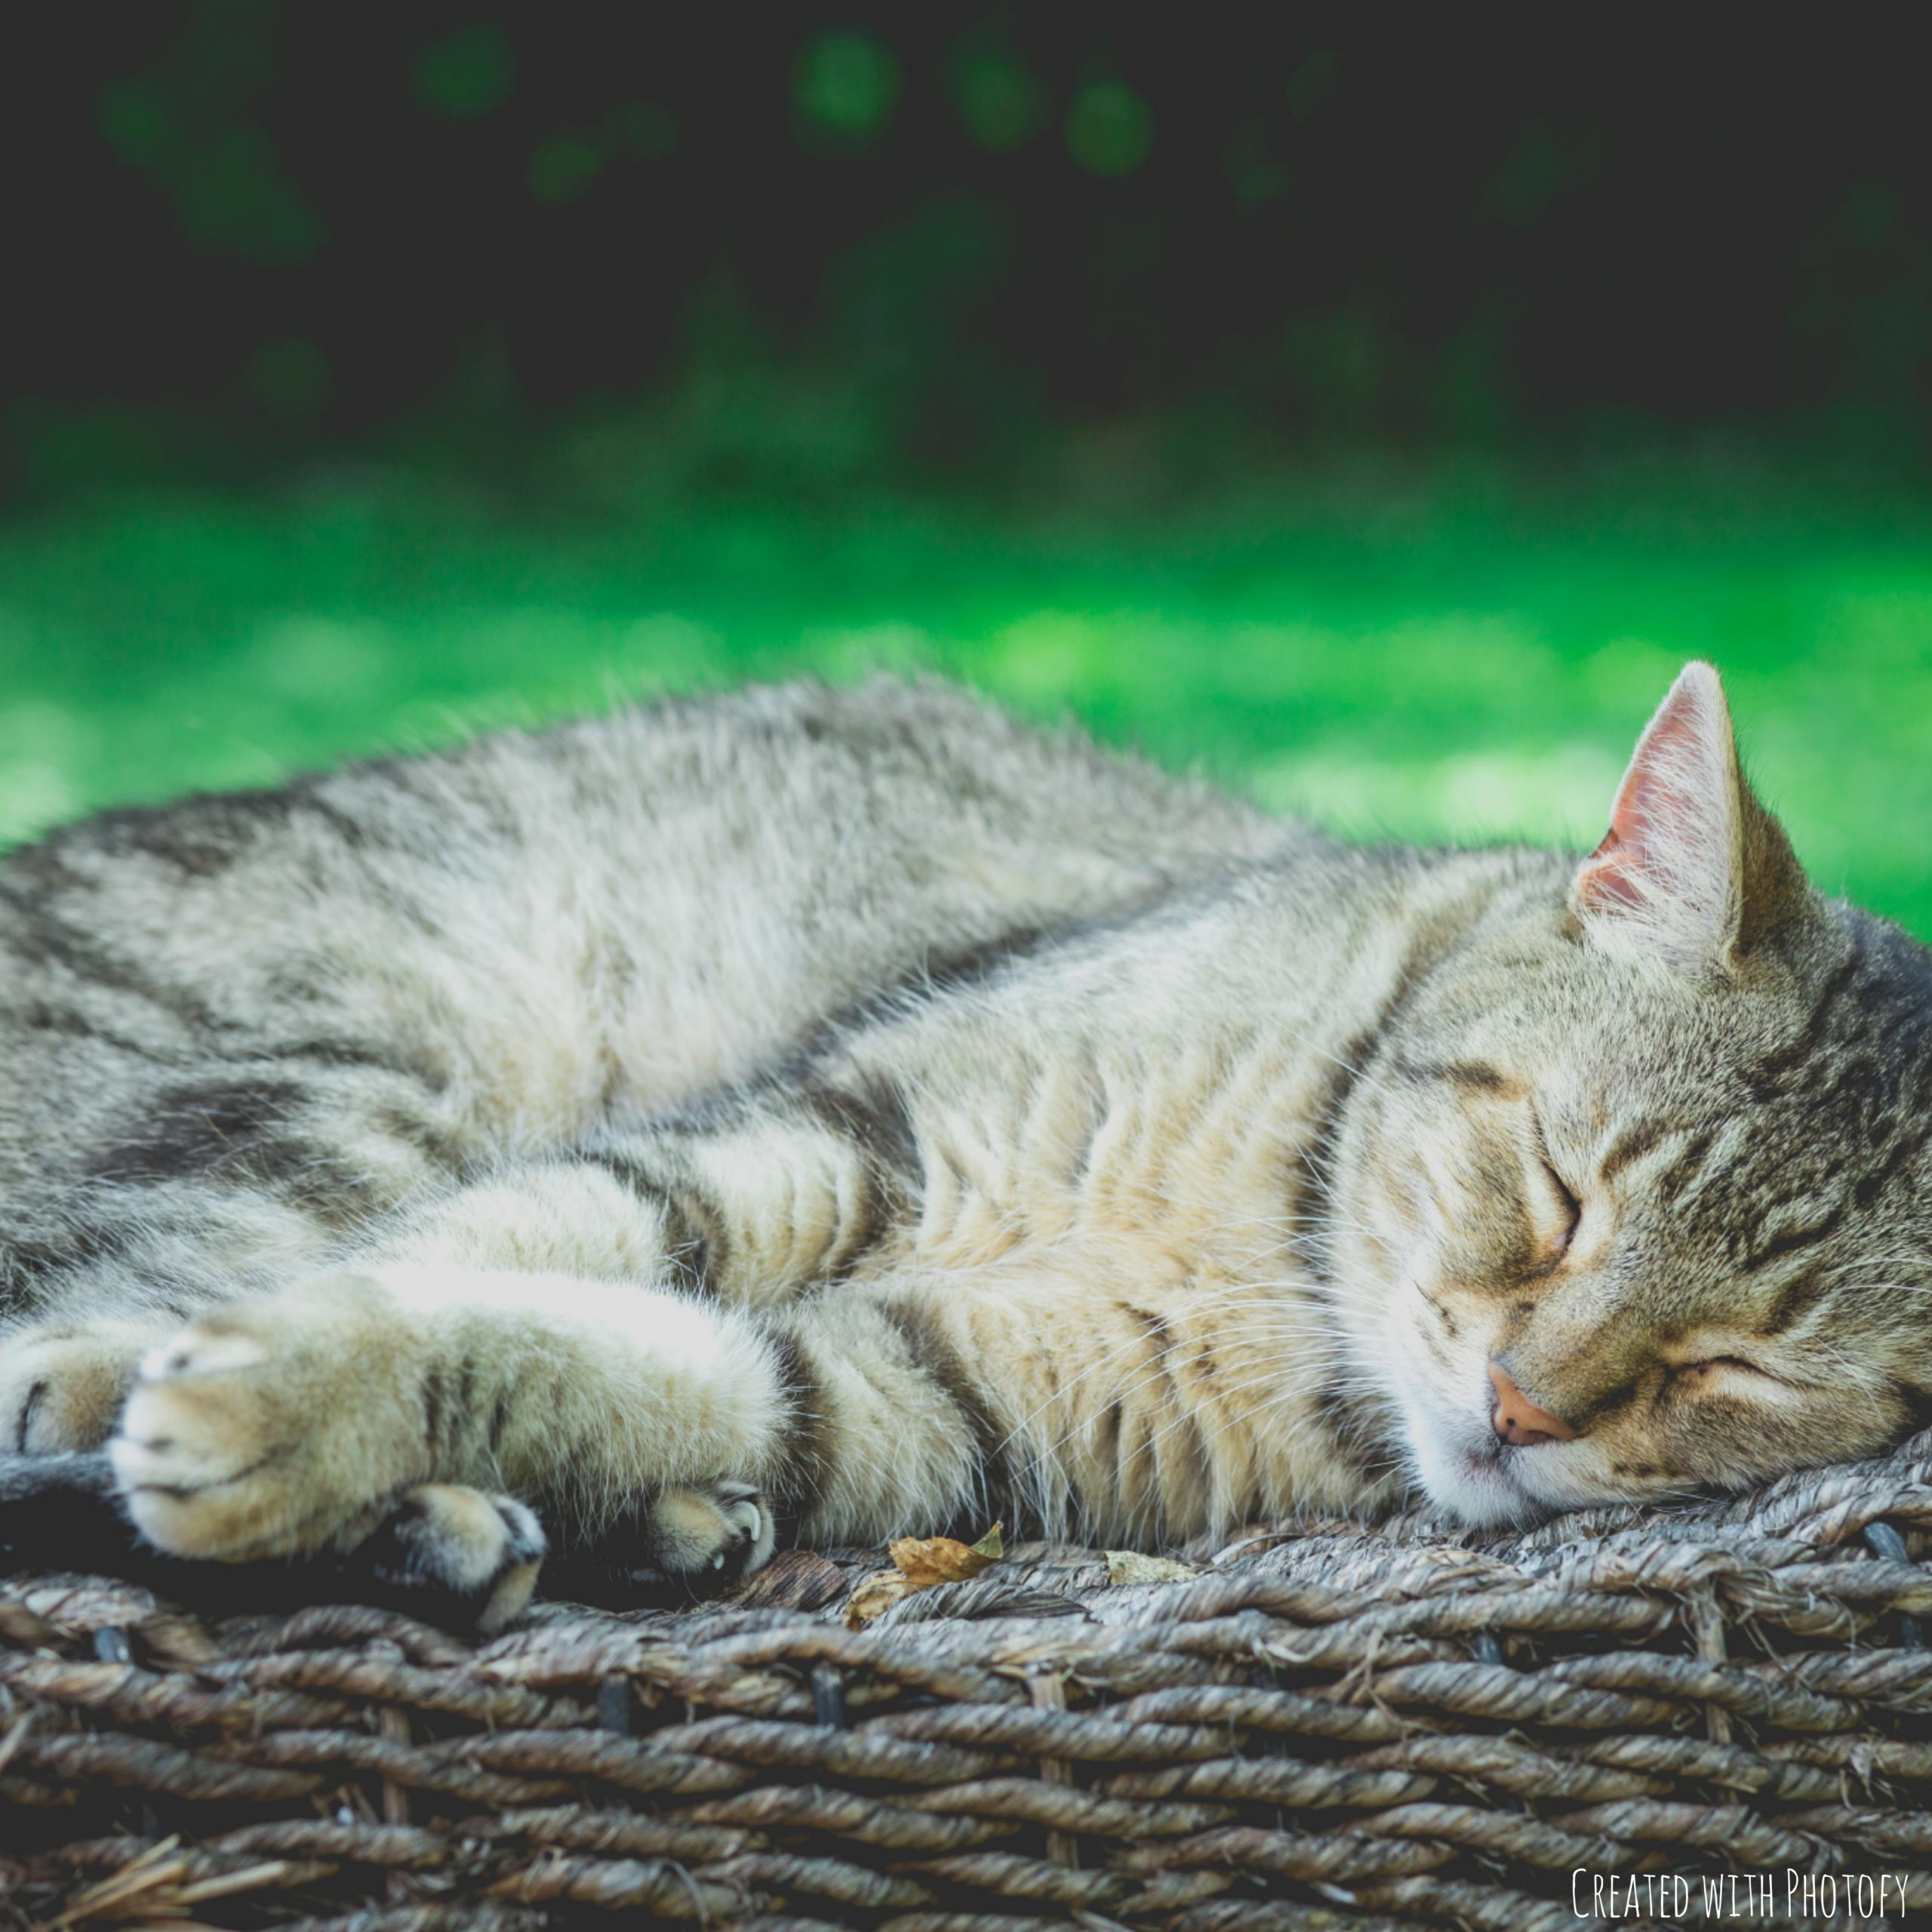 Brown tabby cat taking a nap.